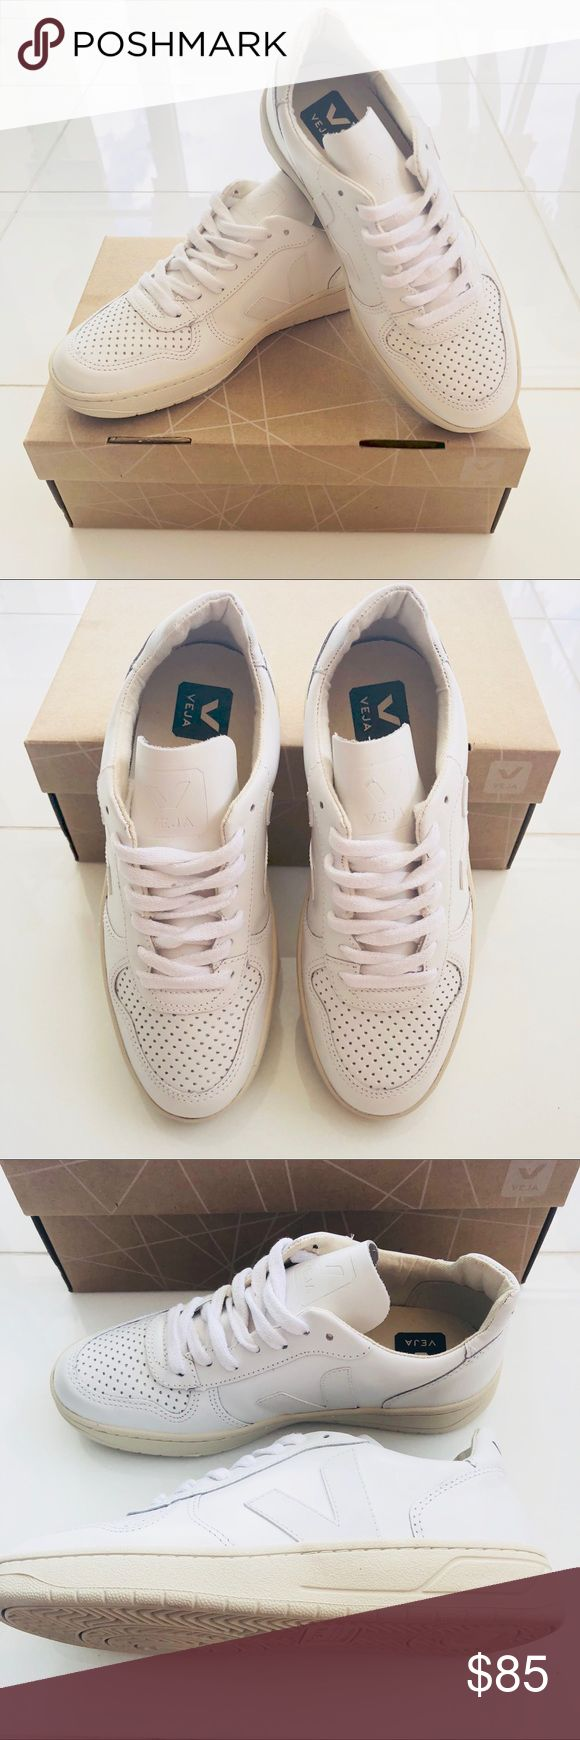 VEJA V10 Extra White Tennies Super cute shoes for any look! Marked down, eco friendly made shoes are the definition of guilt free shopping!  *All shoes come in original box* *No trades, Price is firm* Veja Shoes Athletic Shoes